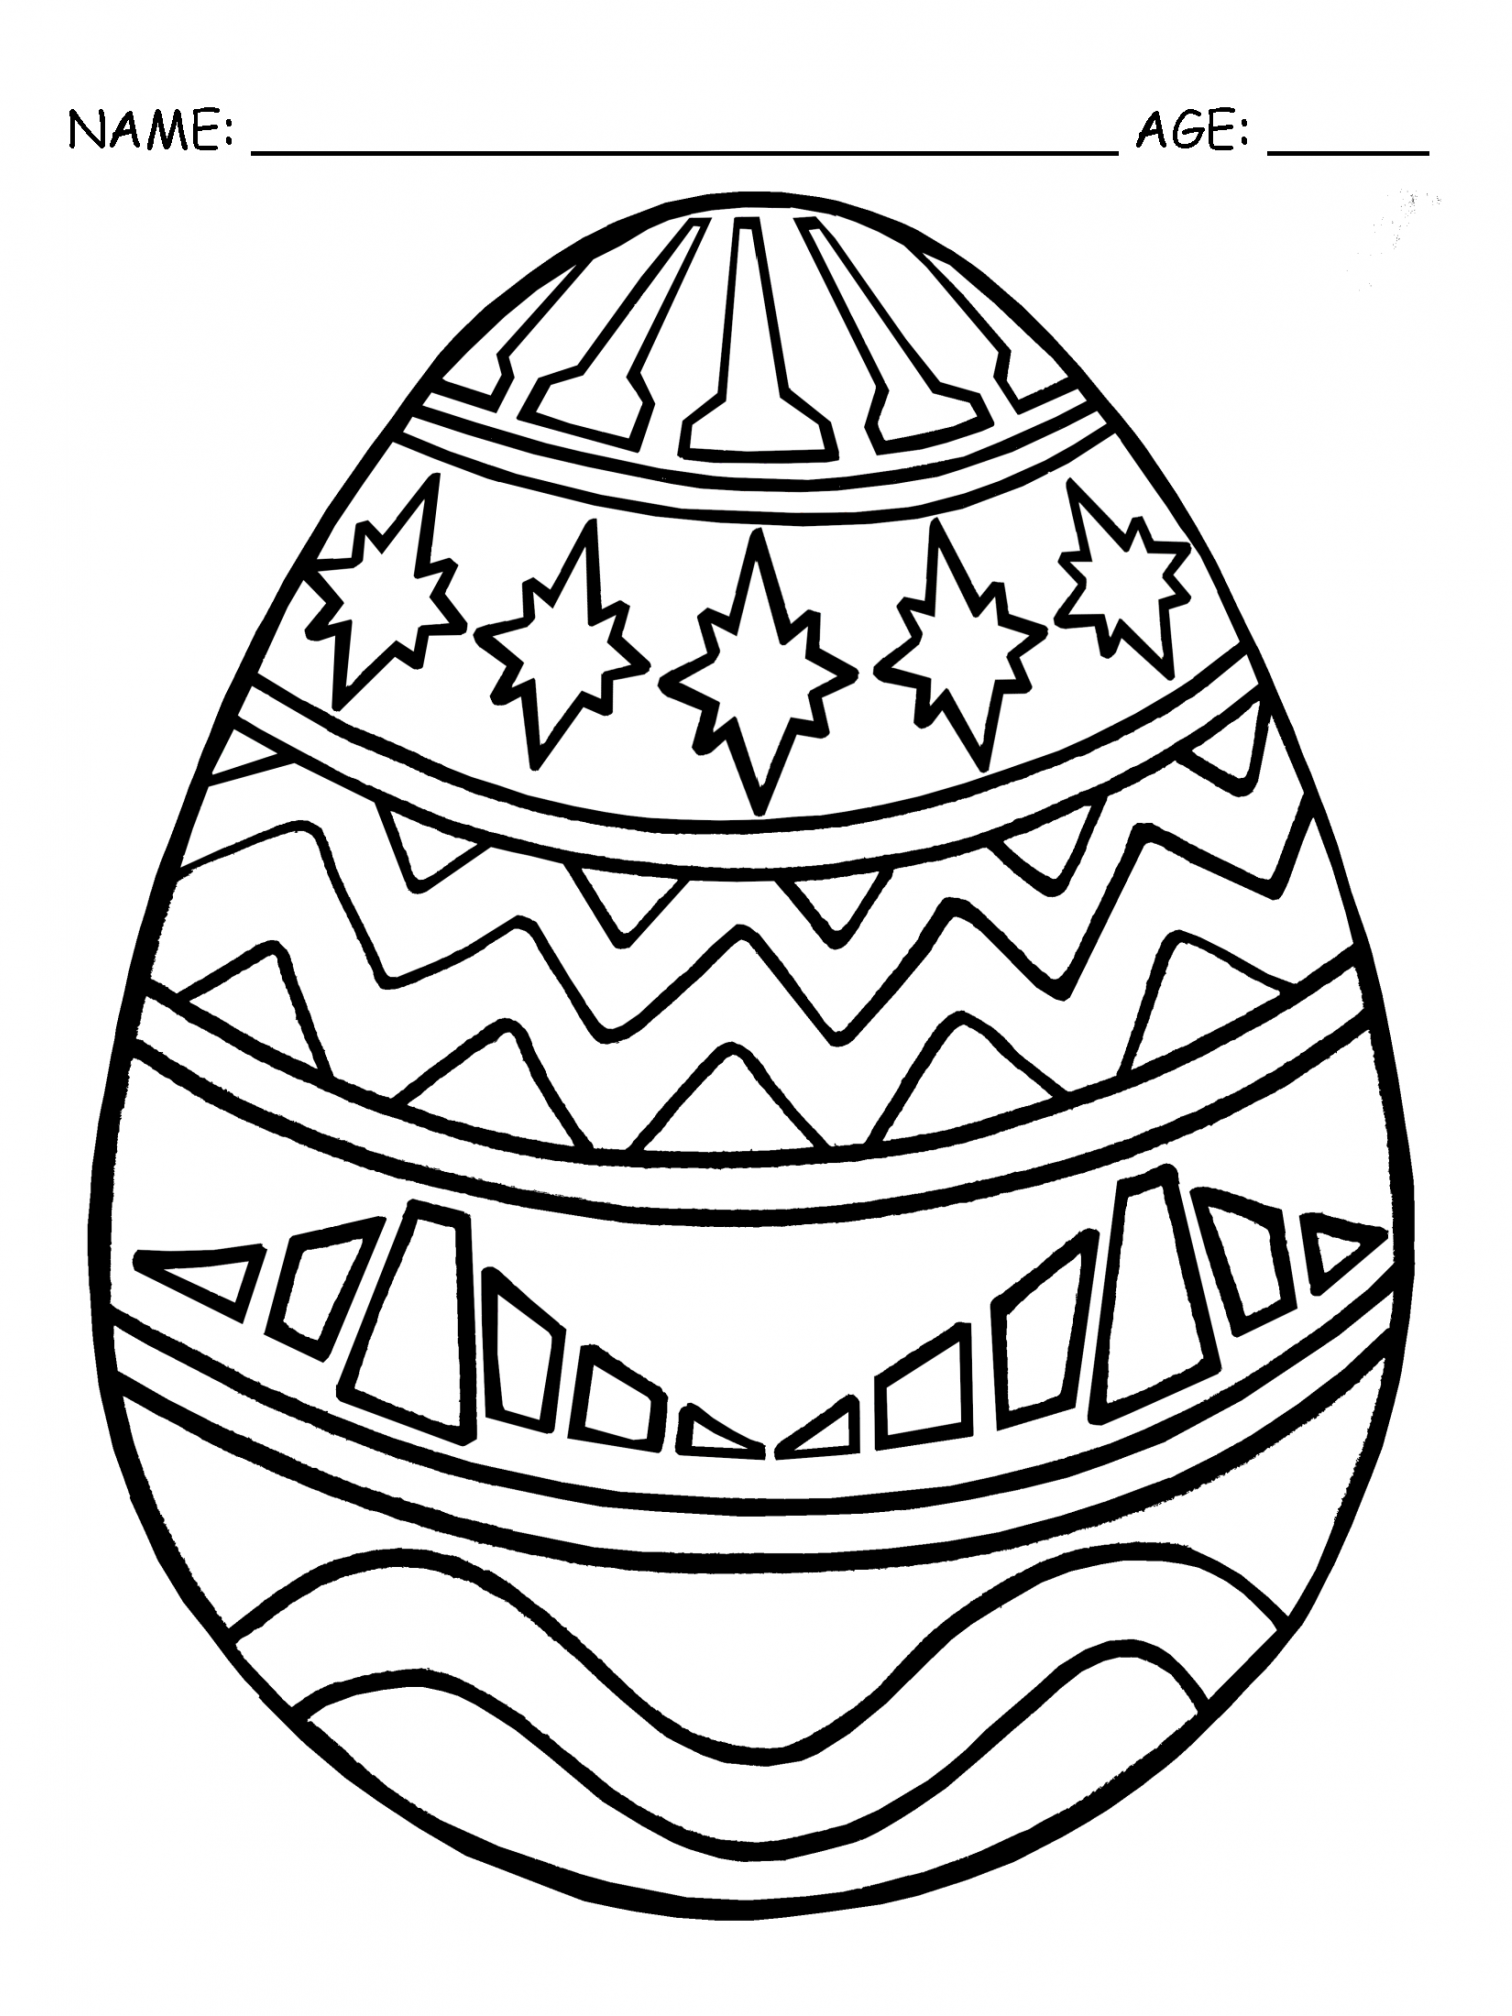 egg for colouring easter coloring pages best coloring pages for kids for colouring egg